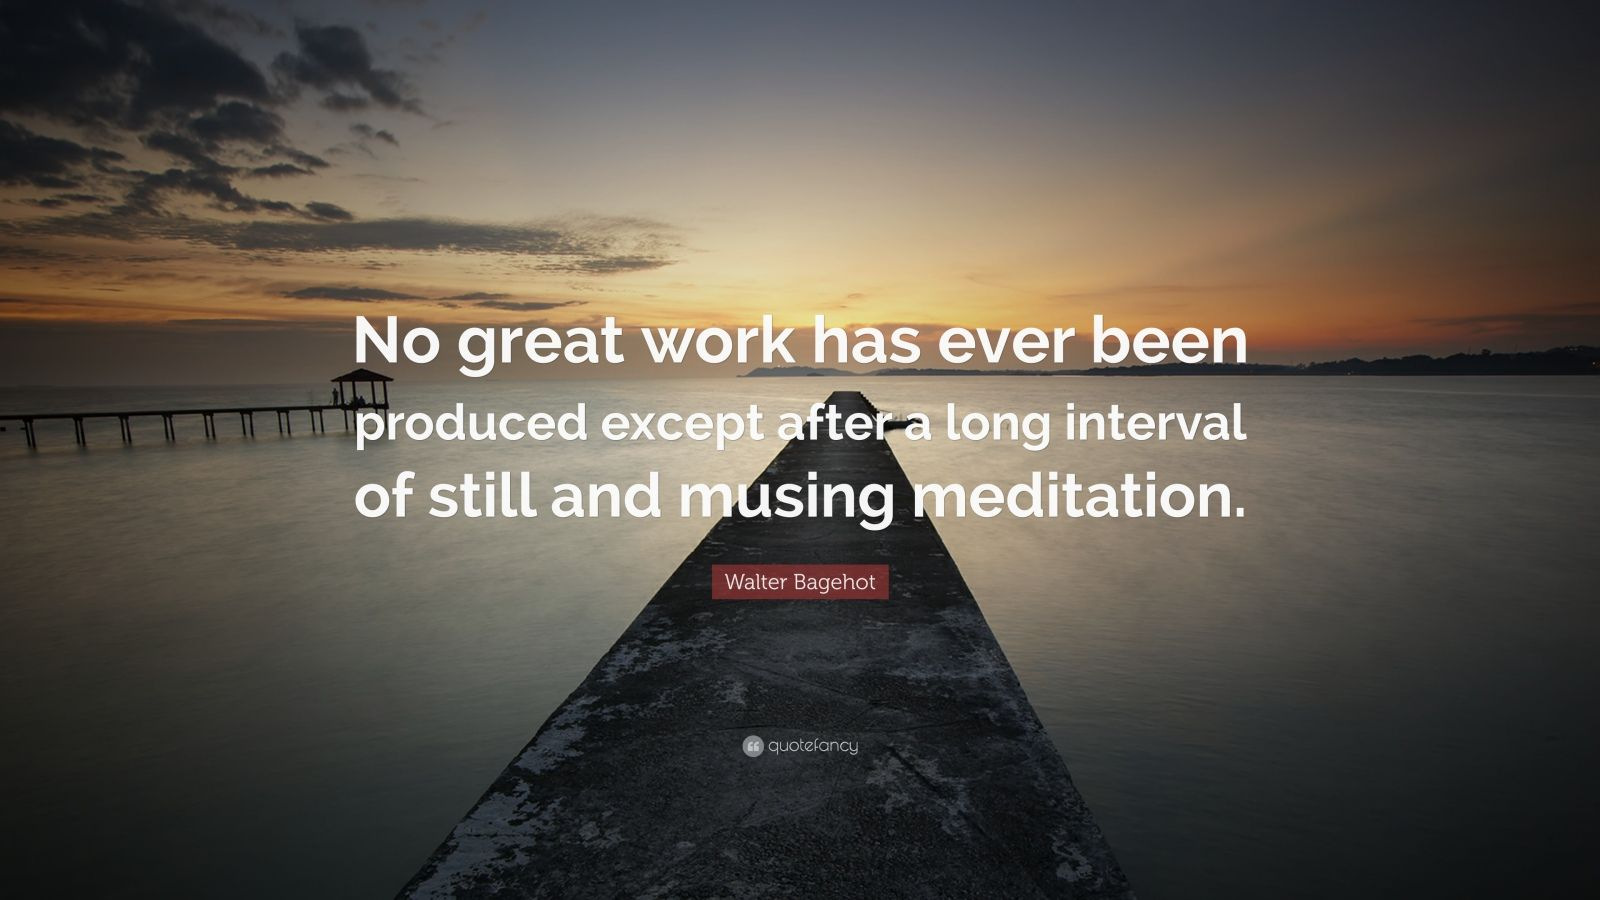 """Walter Bagehot Quote: """"No great work has ever been produced except after a long interval of still and musing meditation."""""""